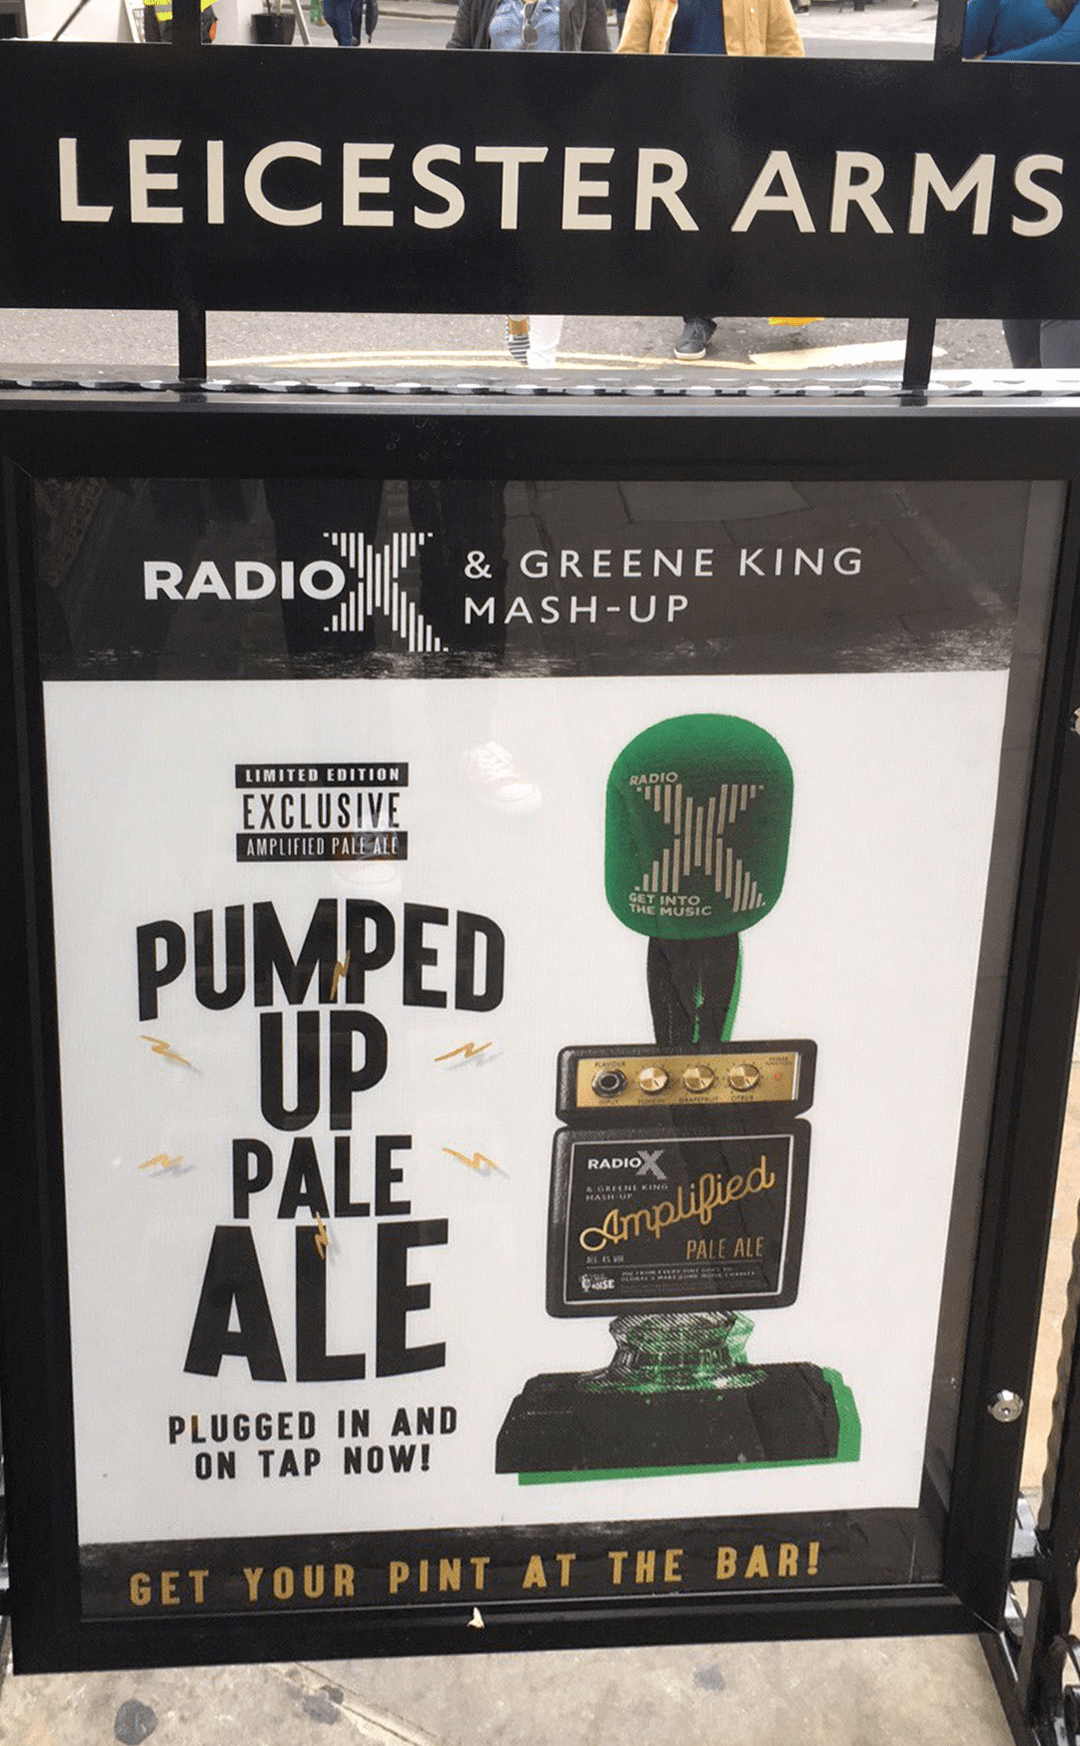 Radio X Beer at a pub